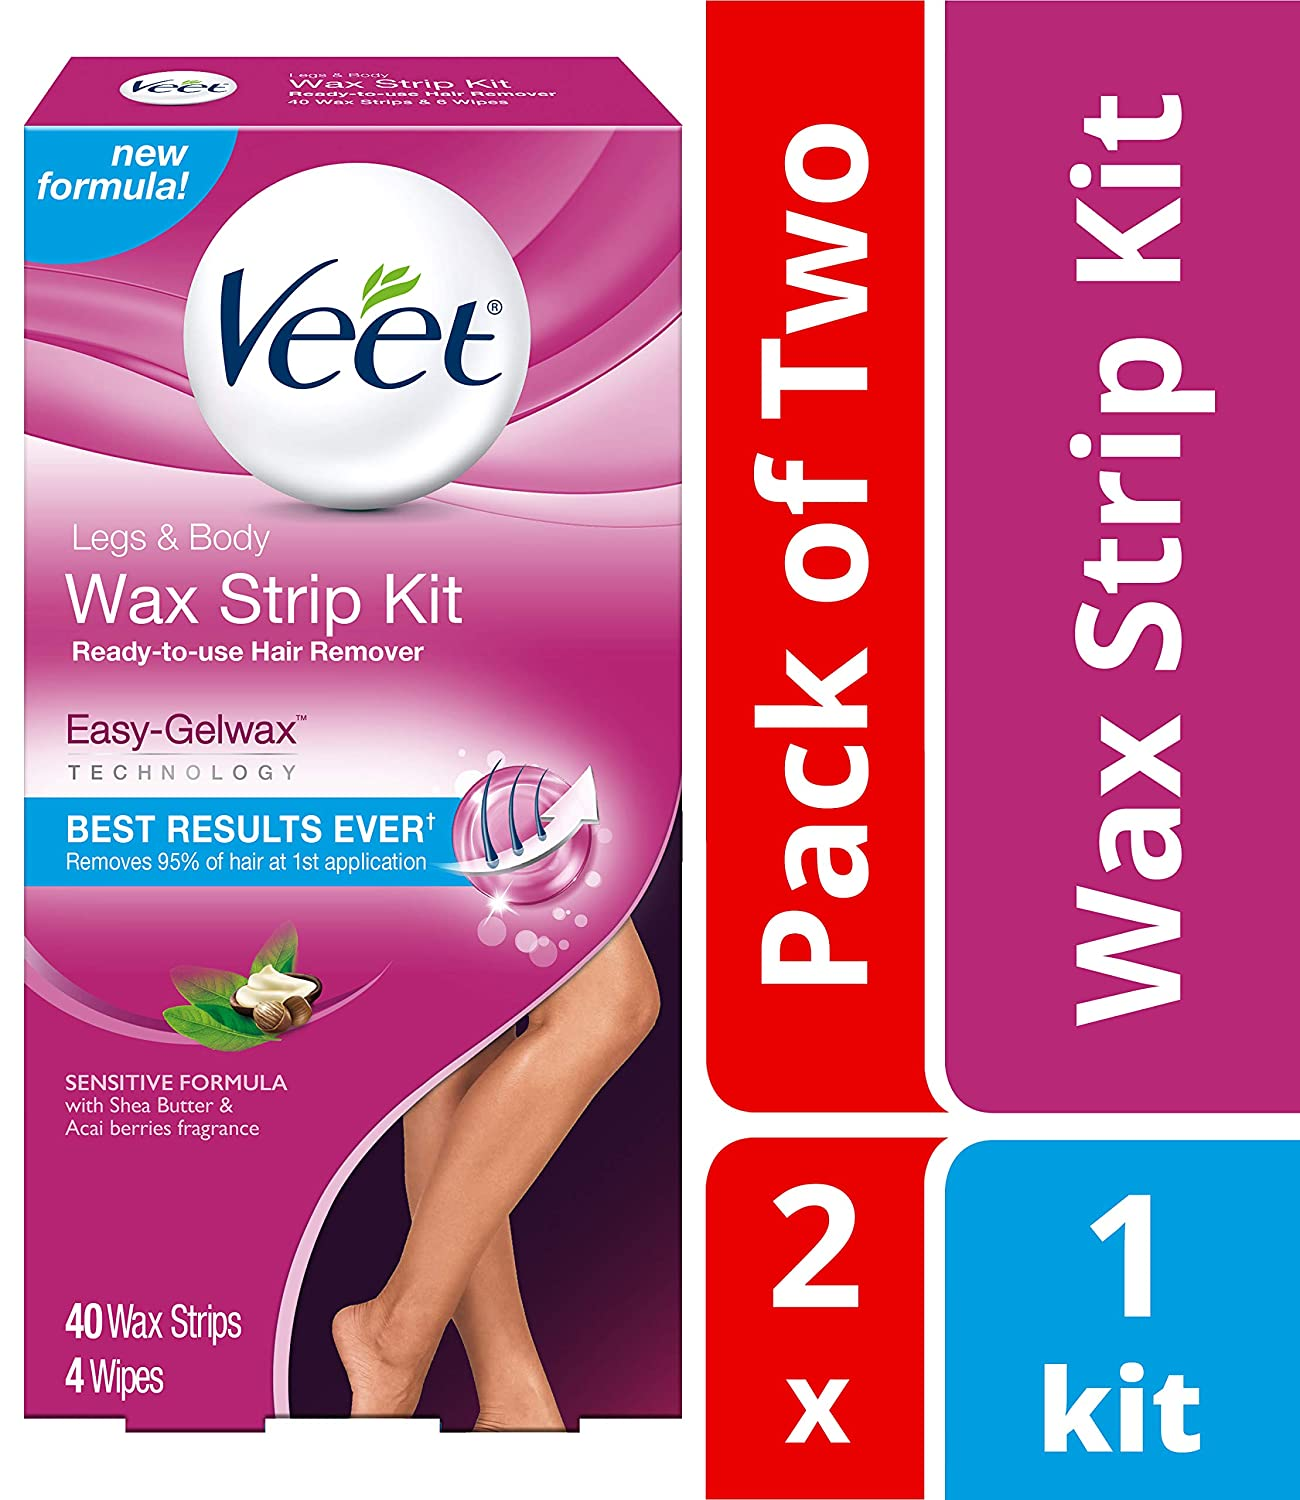 Veet Leg & Body Hair Removal Kit- Sensitive Formula, Ready-to-use Cold Wax Strips, Shea Butter & Acai Fragrance, 40 Count (Pack of 2)